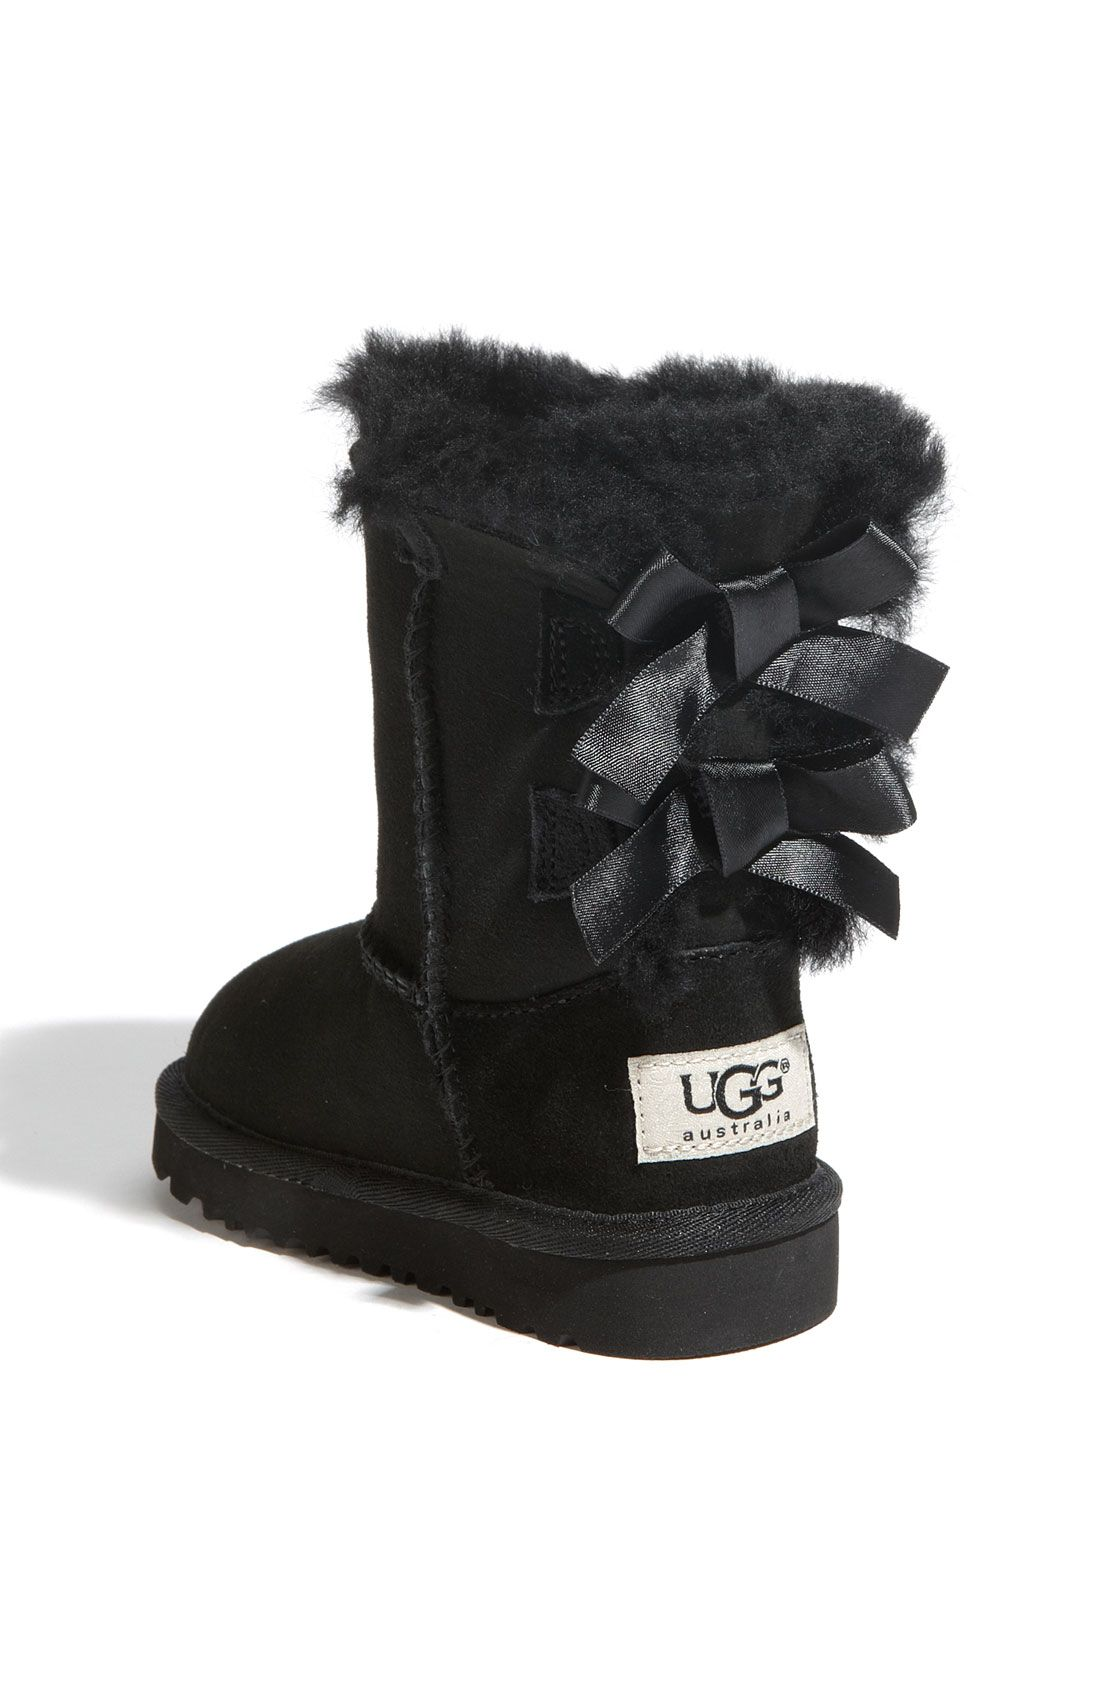 free shipping and returns on ugg australia bailey bow boot